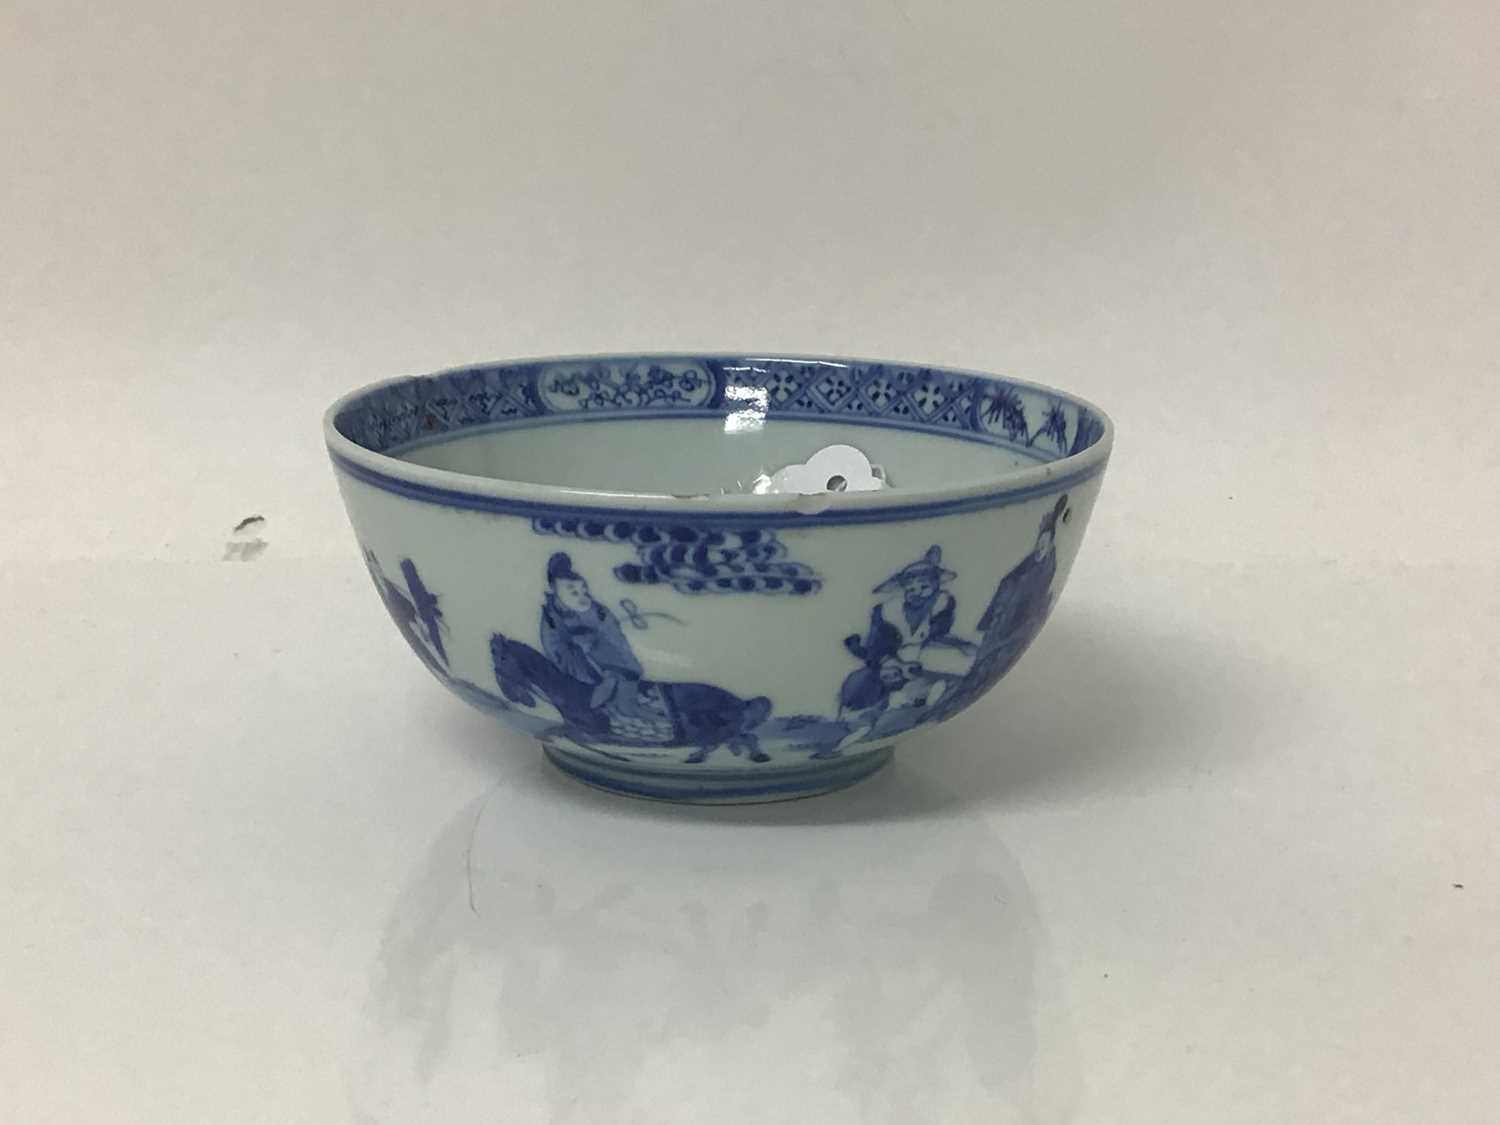 Chinese Kangxi porcelain jug and cover with later silver mount, together with a bowl (2) - Image 3 of 16